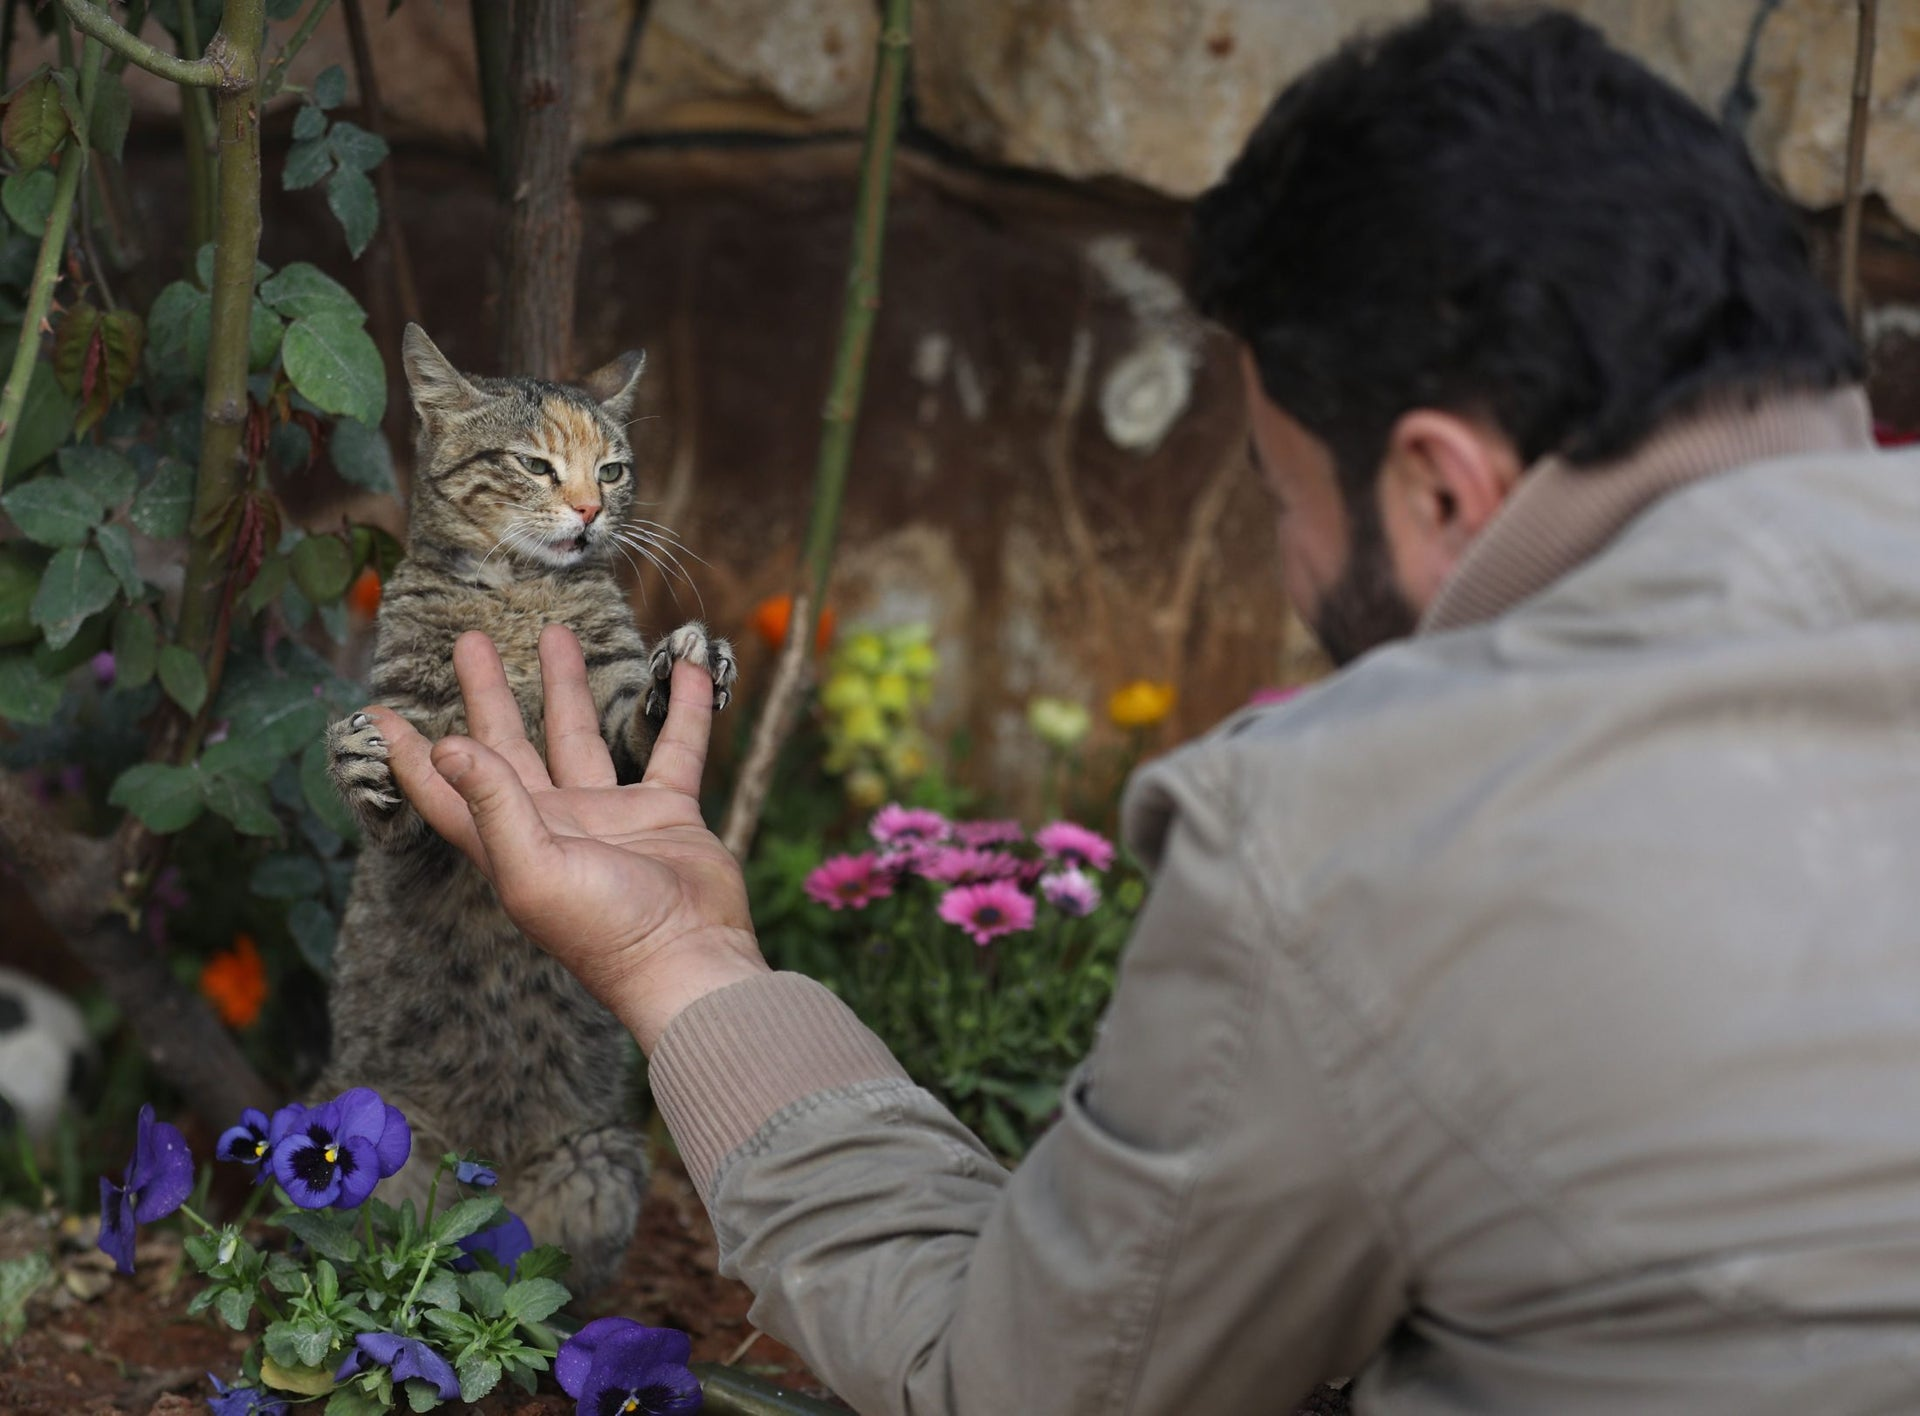 Mohammed Alaa al-Jaleel plays with a cat at Ernesto's Cat Sanctuary that he runs in Kfar Naha, an opposition-held town in Aleppo province in Syria on March 17, 2018.